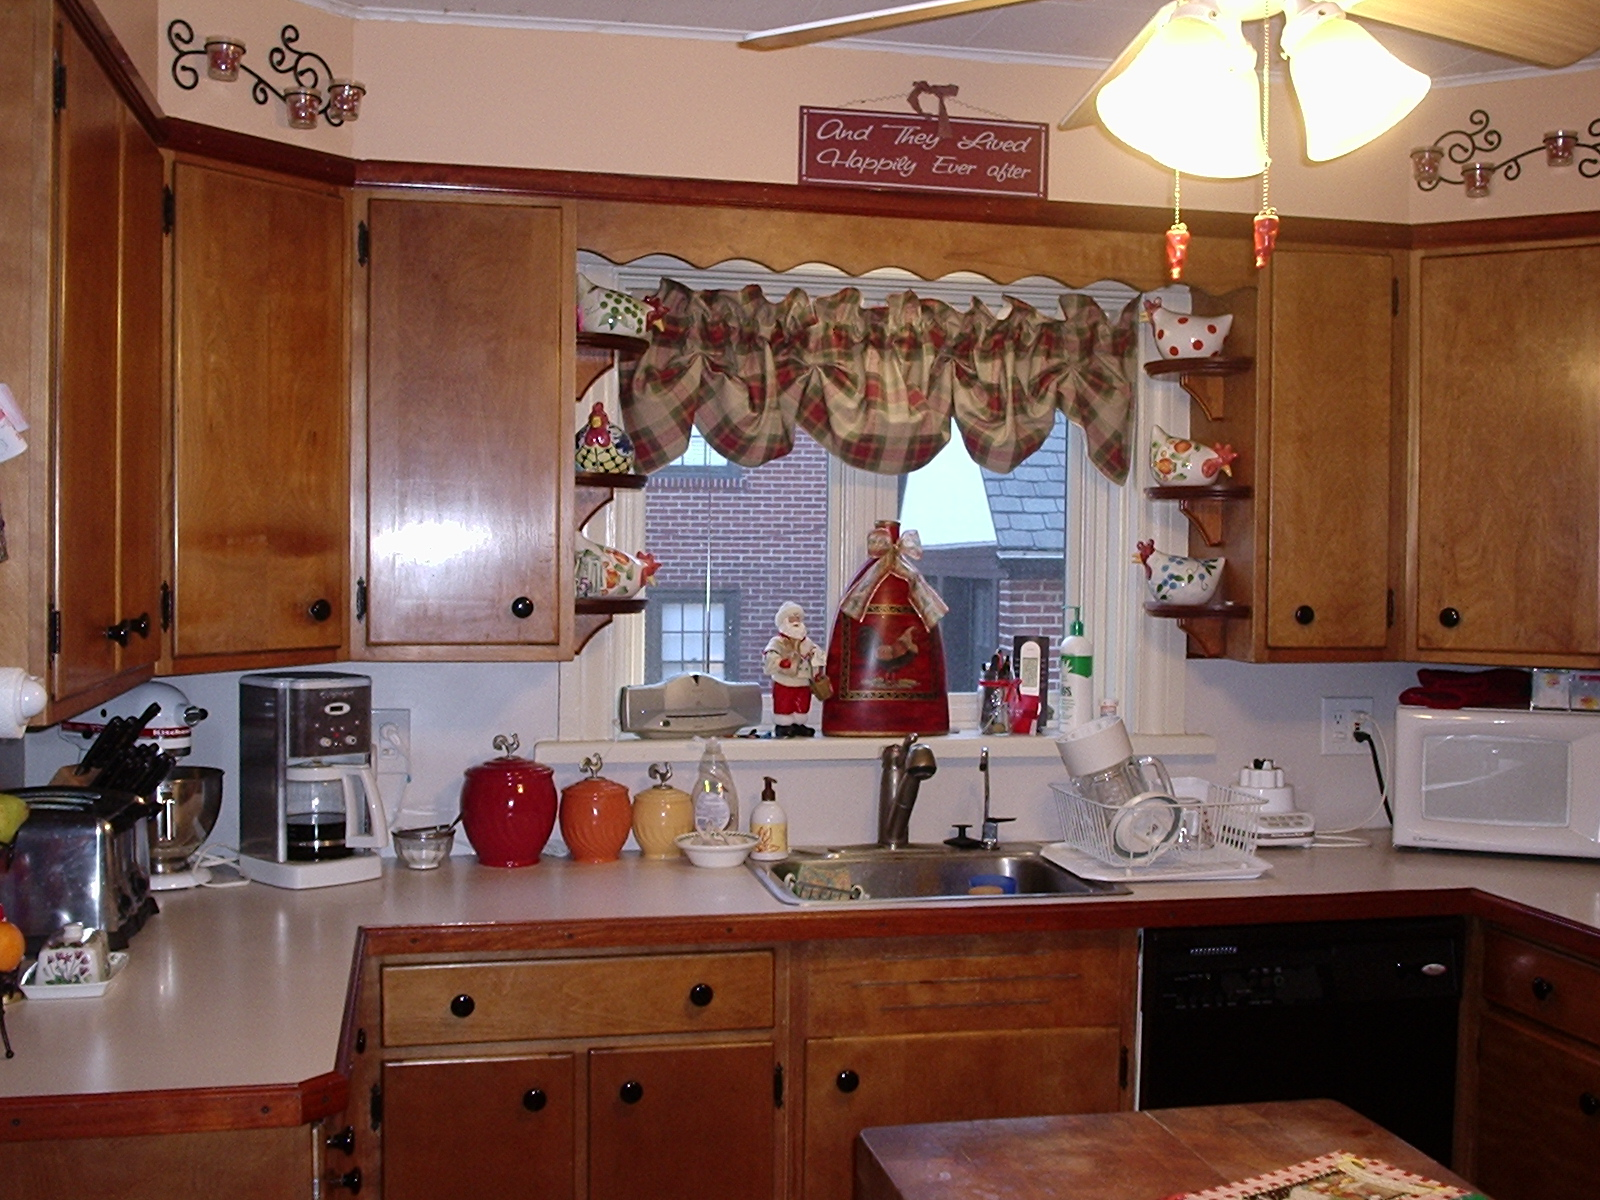 Superior woodcraft get the most value when remodeling for Kitchen cabinets yorktown ny